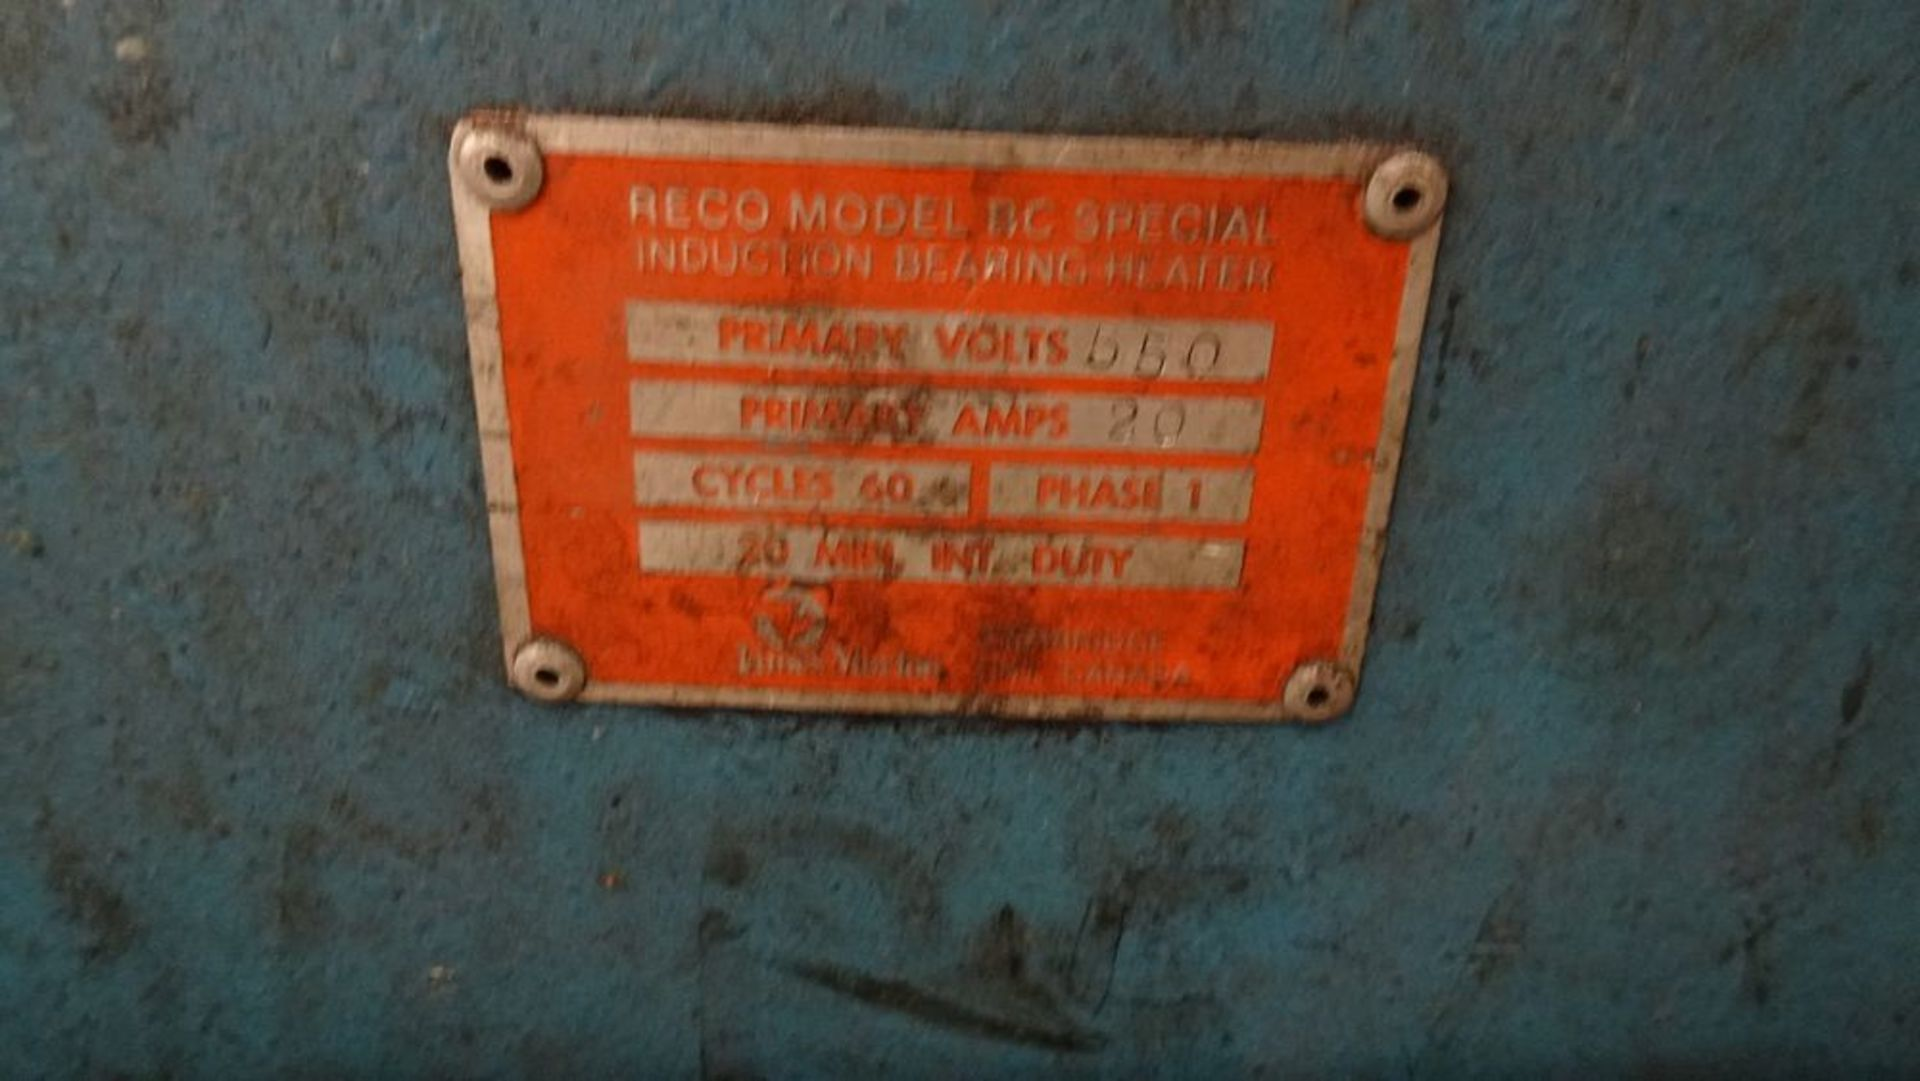 """Lot 16 - RECO RC SPECIAL INDUCTION BEARING HEATER, 550V, 1 PHASE, 7"""" X 12"""" OPENING C/W CART (RIGGING FEE $25)"""